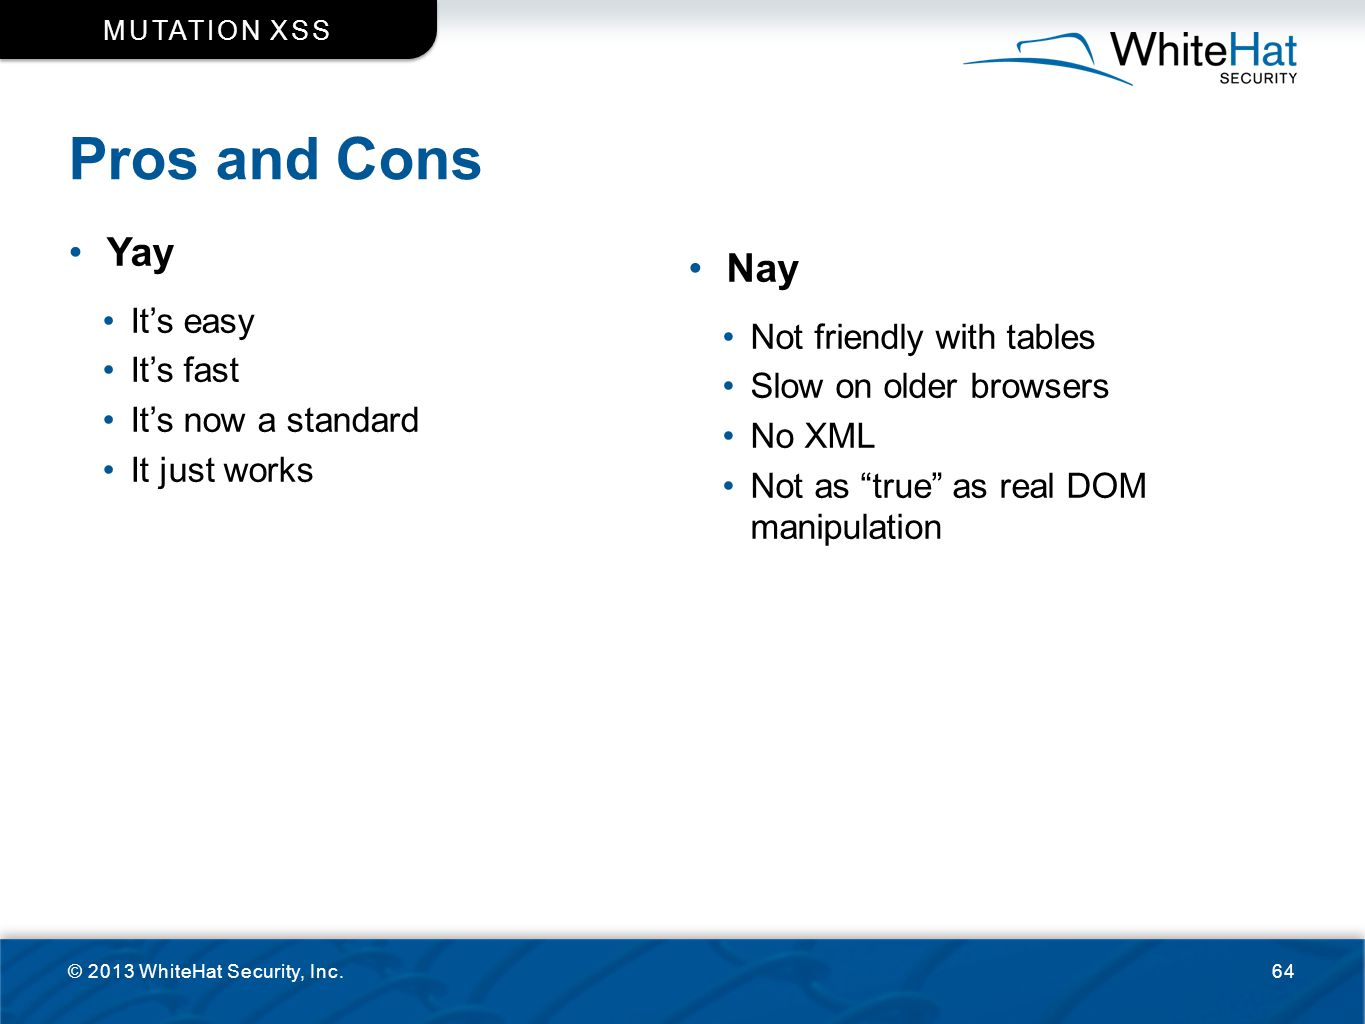 Pros and Cons © 2013 WhiteHat Security, Inc.64 MUTATION XSS Yay It's easy It's fast It's now a standard It just works Nay Not friendly with tables Slo